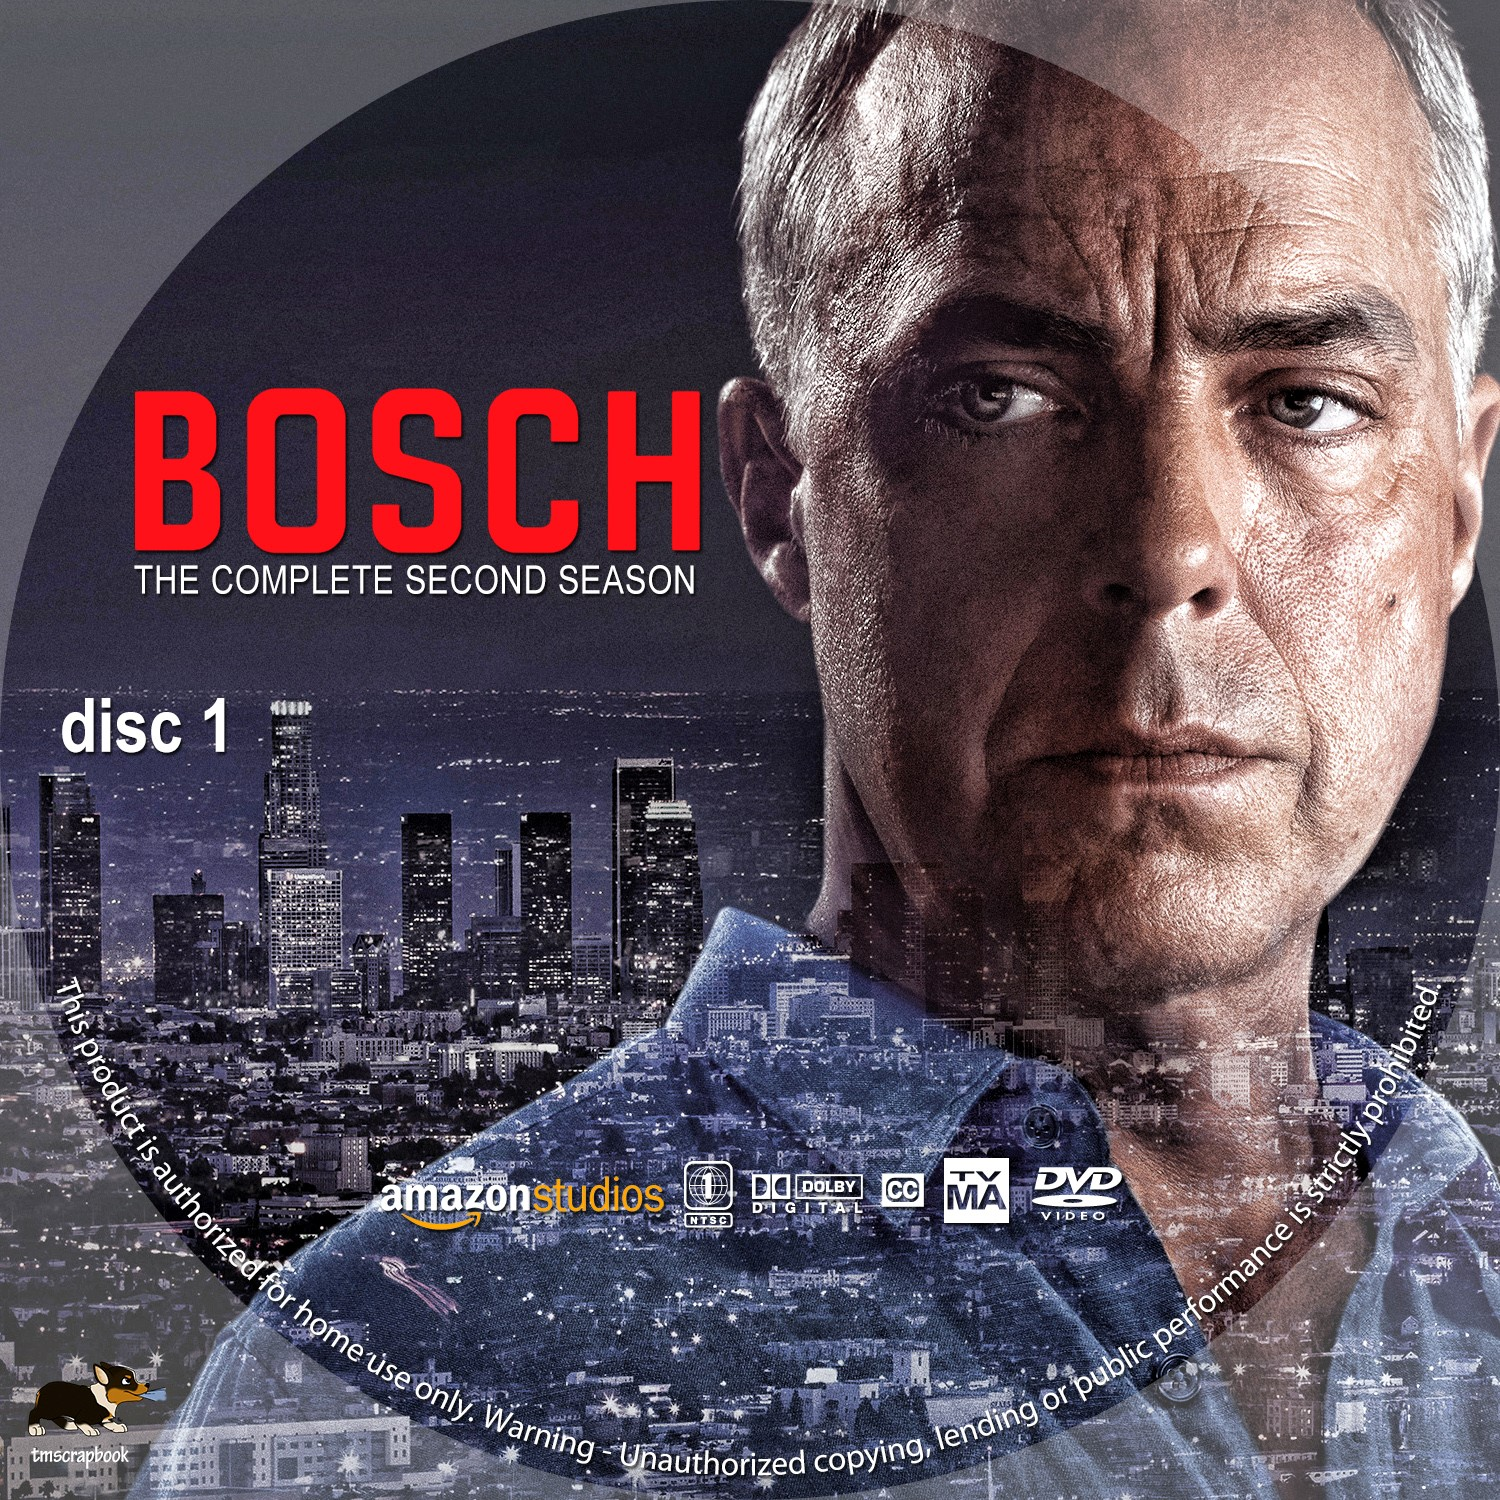 Bosch Season 2 Disc 1-3 DVD Label